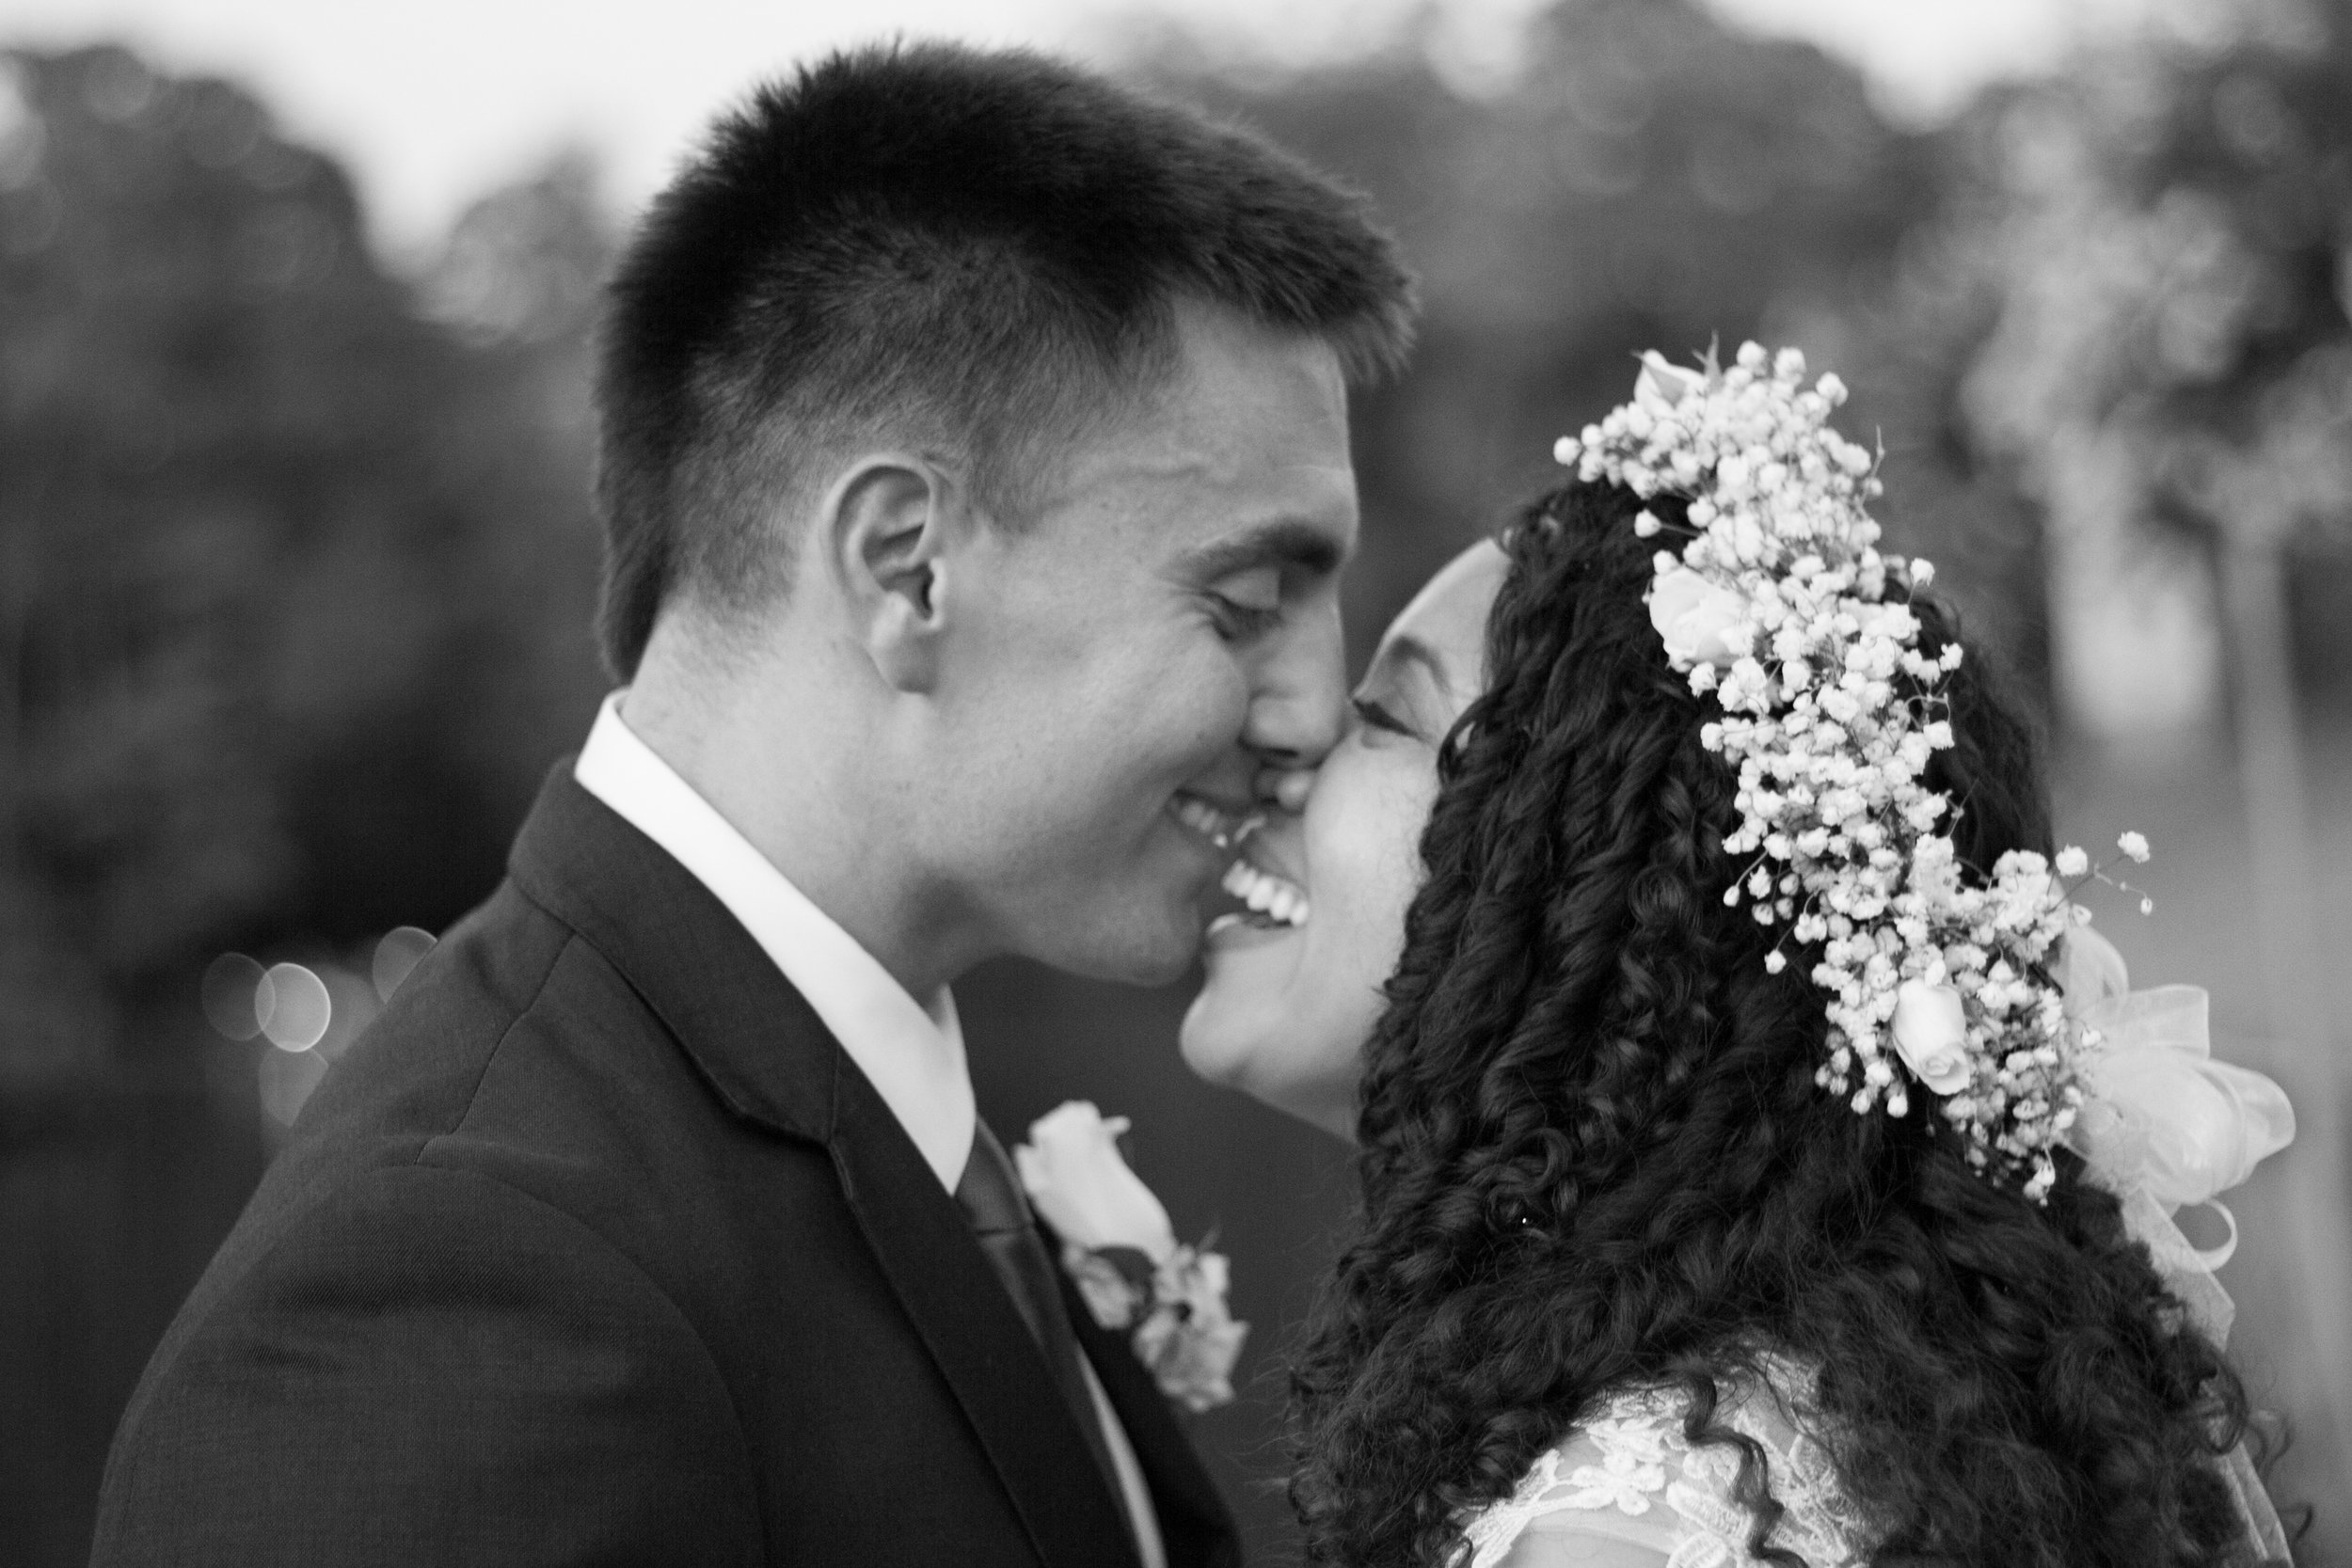 Cathy and Chris Wedding Photos - Black and White - by Brittany Castillo Meadow Portraits (15 of 21).jpg